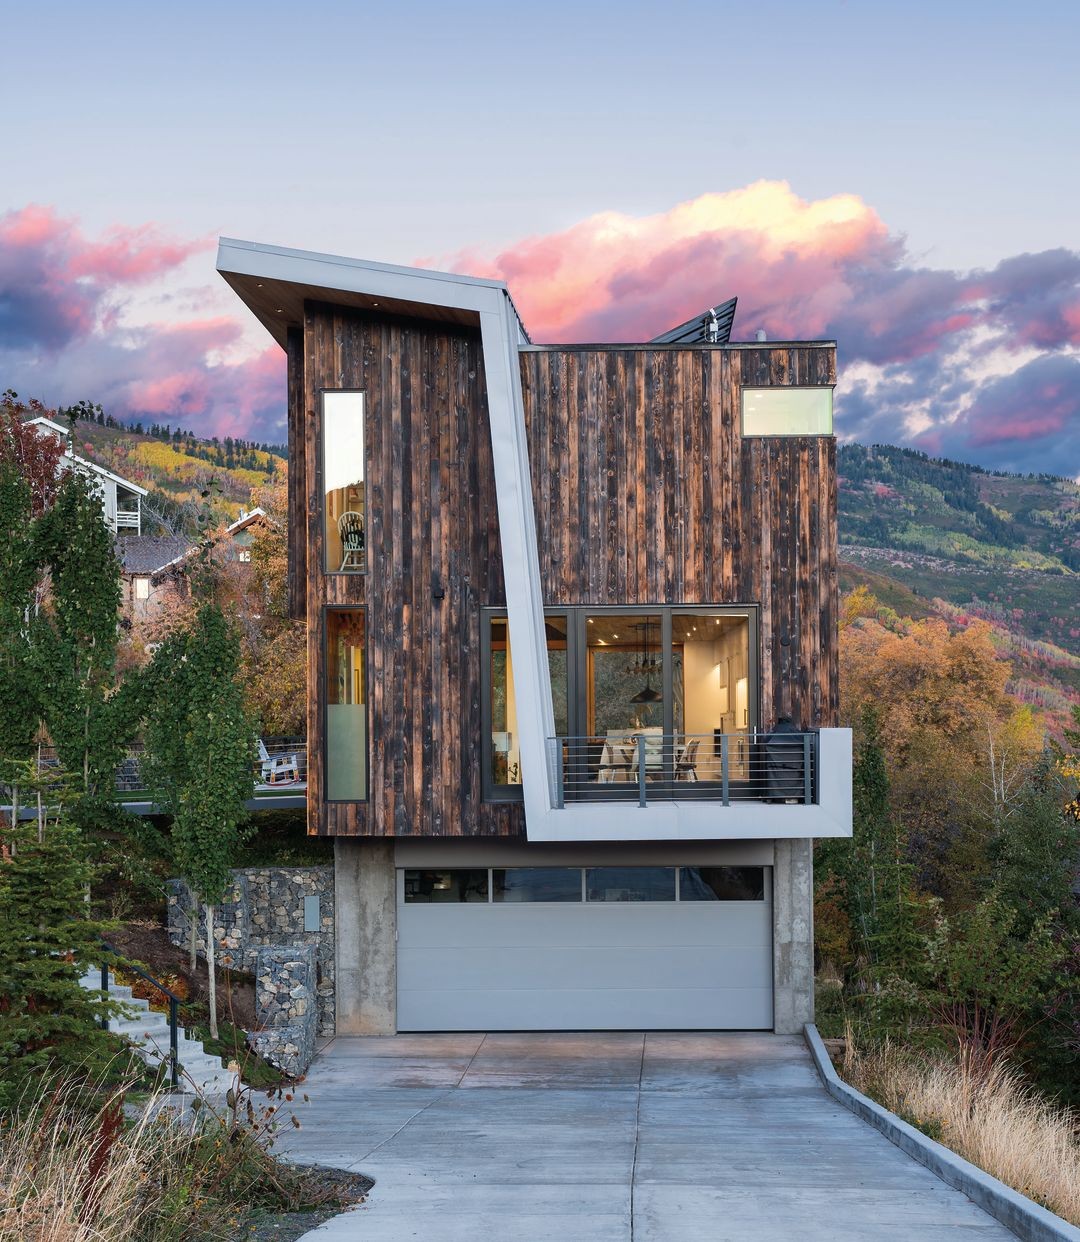 a55852b6574 A Dazzling Hillside Abode We Can't Stop Thinking About | Park City ...